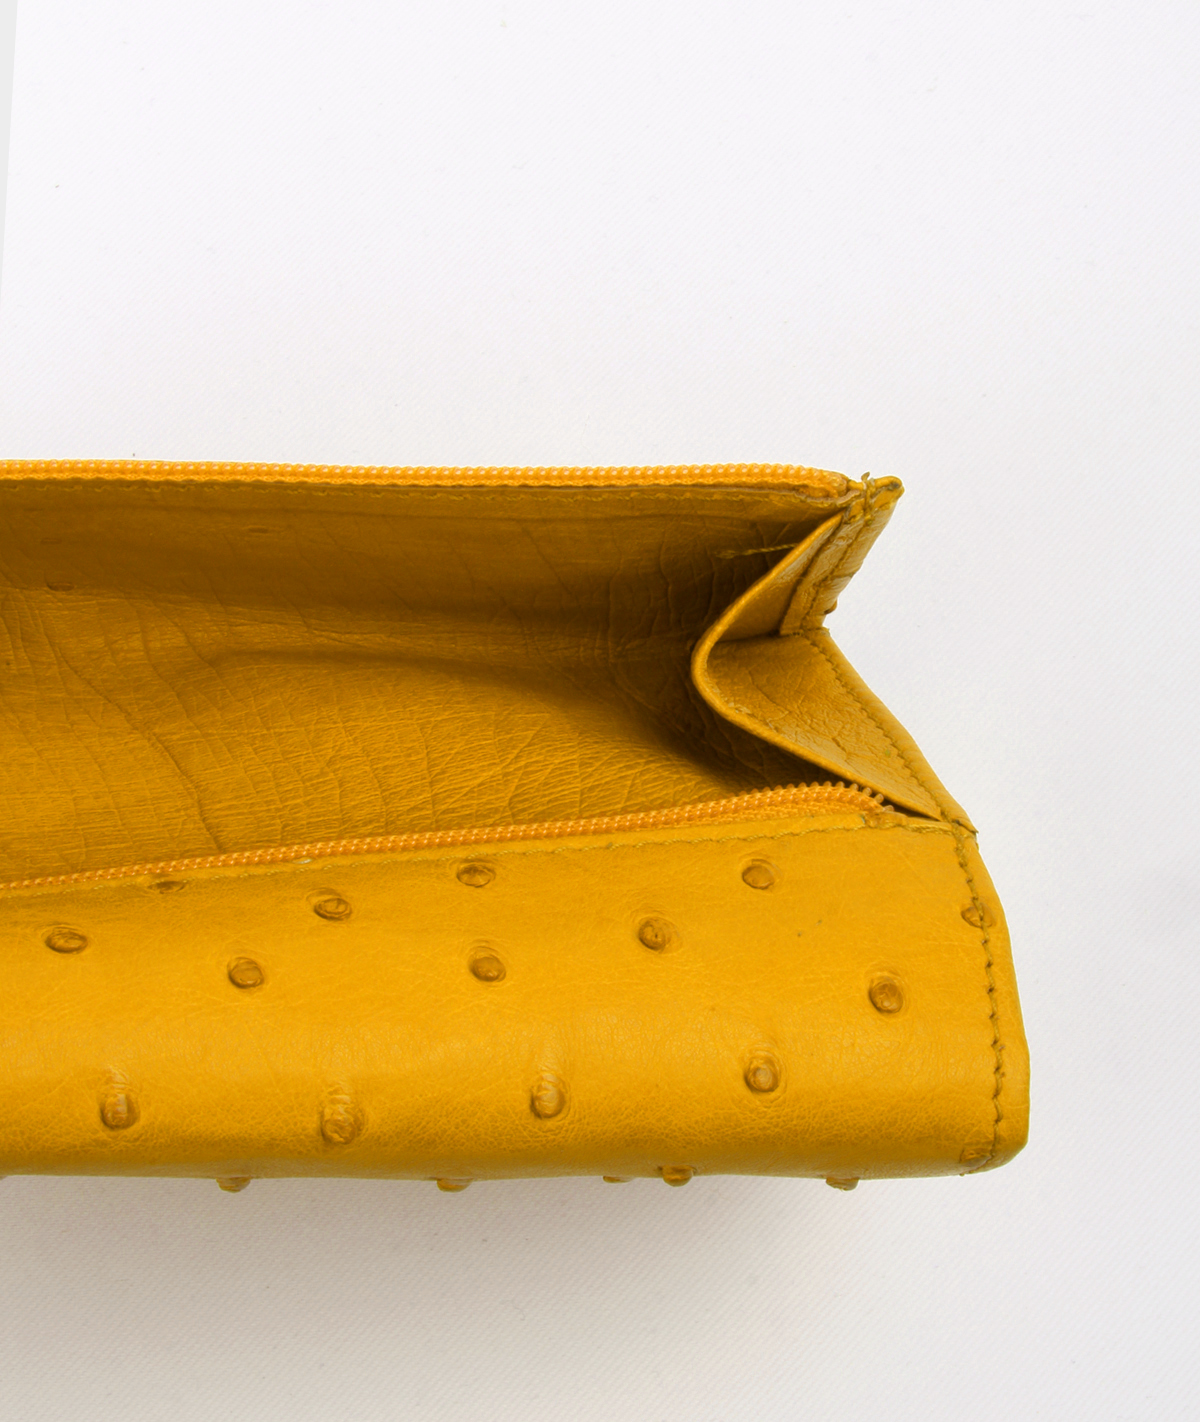 WOMENS WALLET IN DAFFODIL